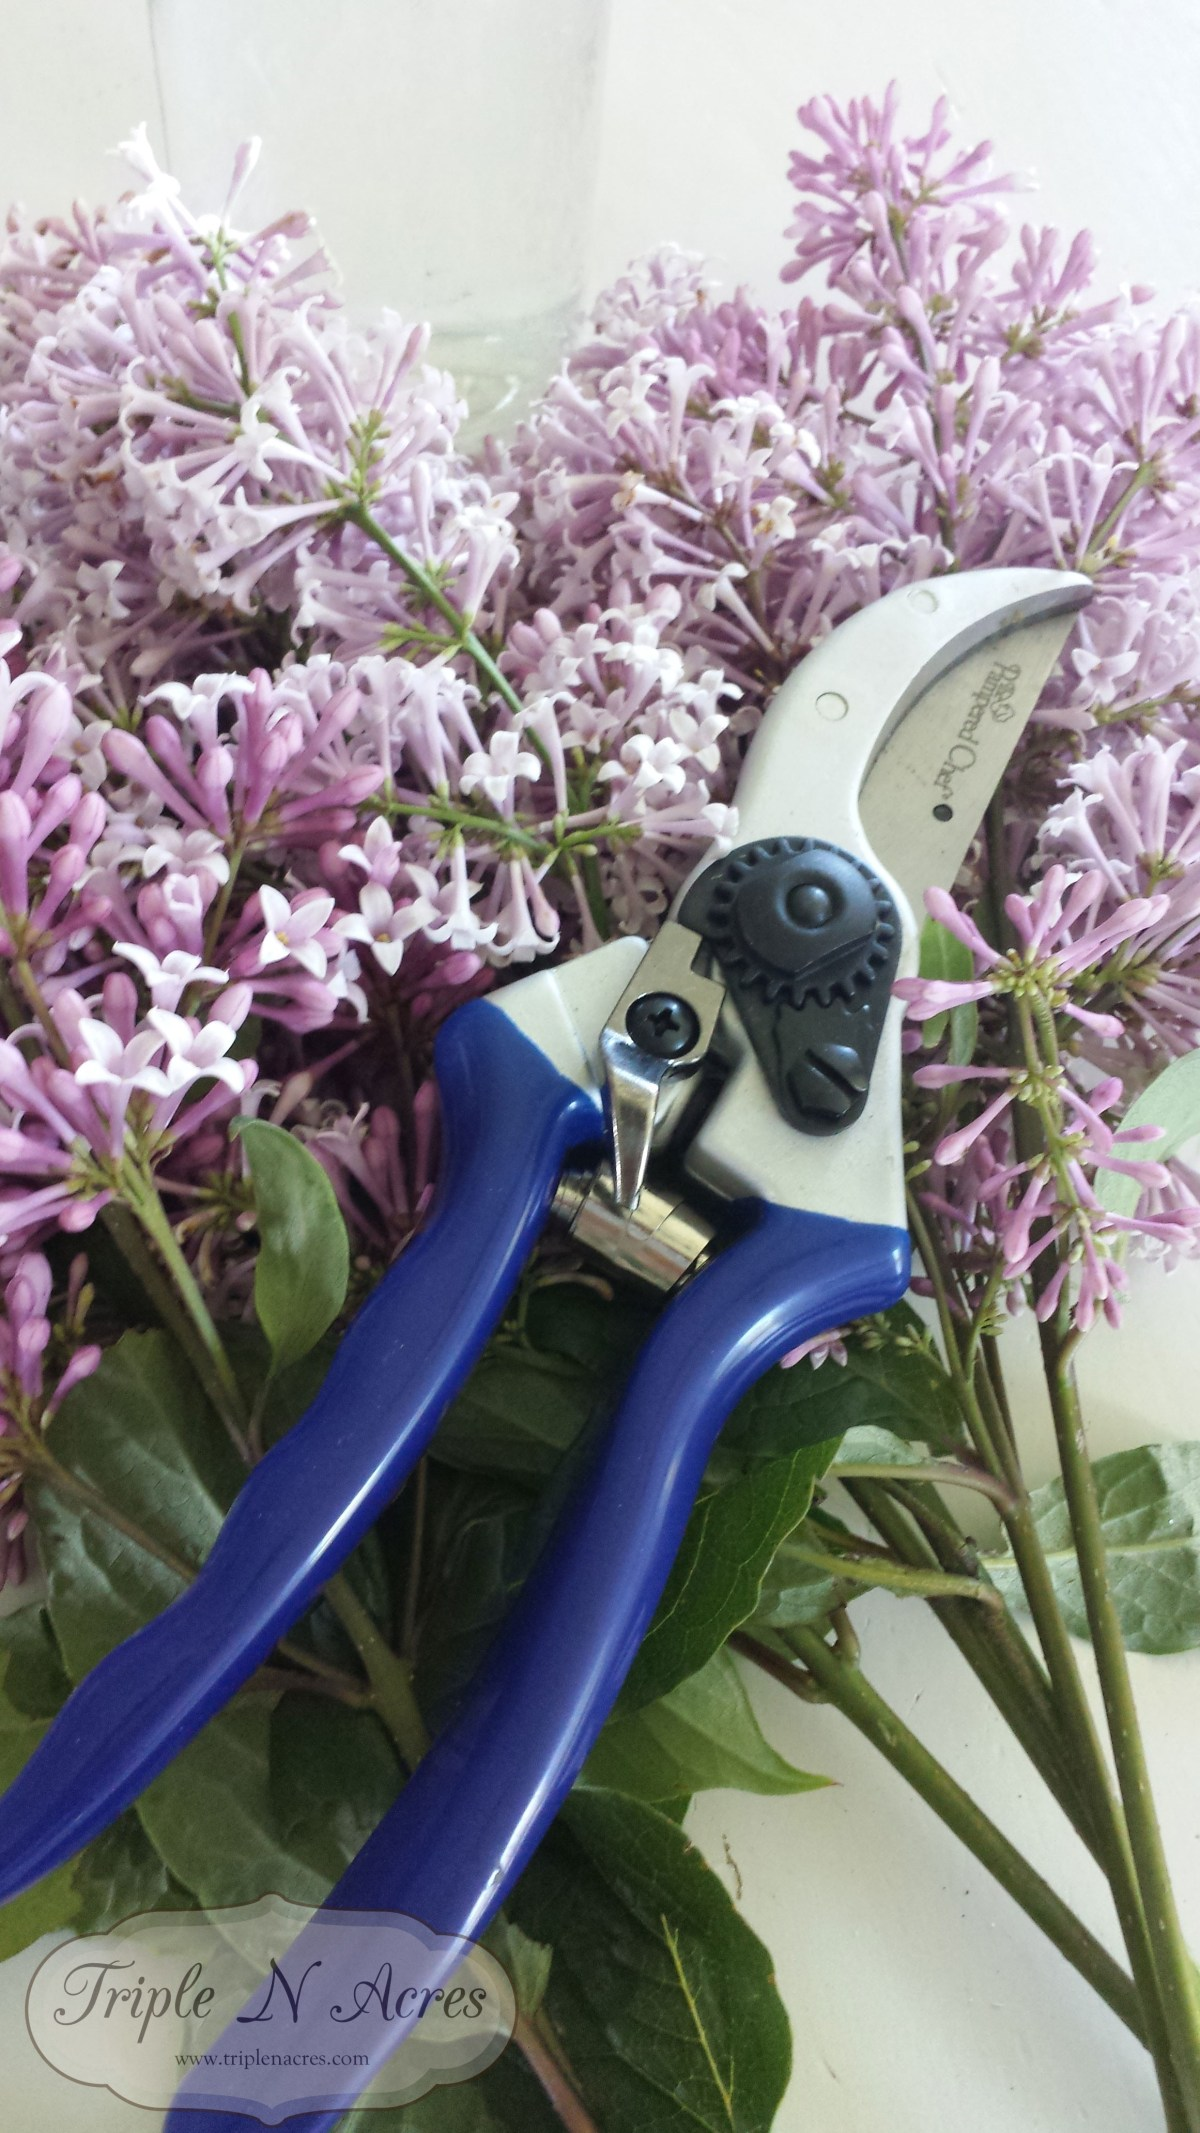 Tool of the day: pruning shears